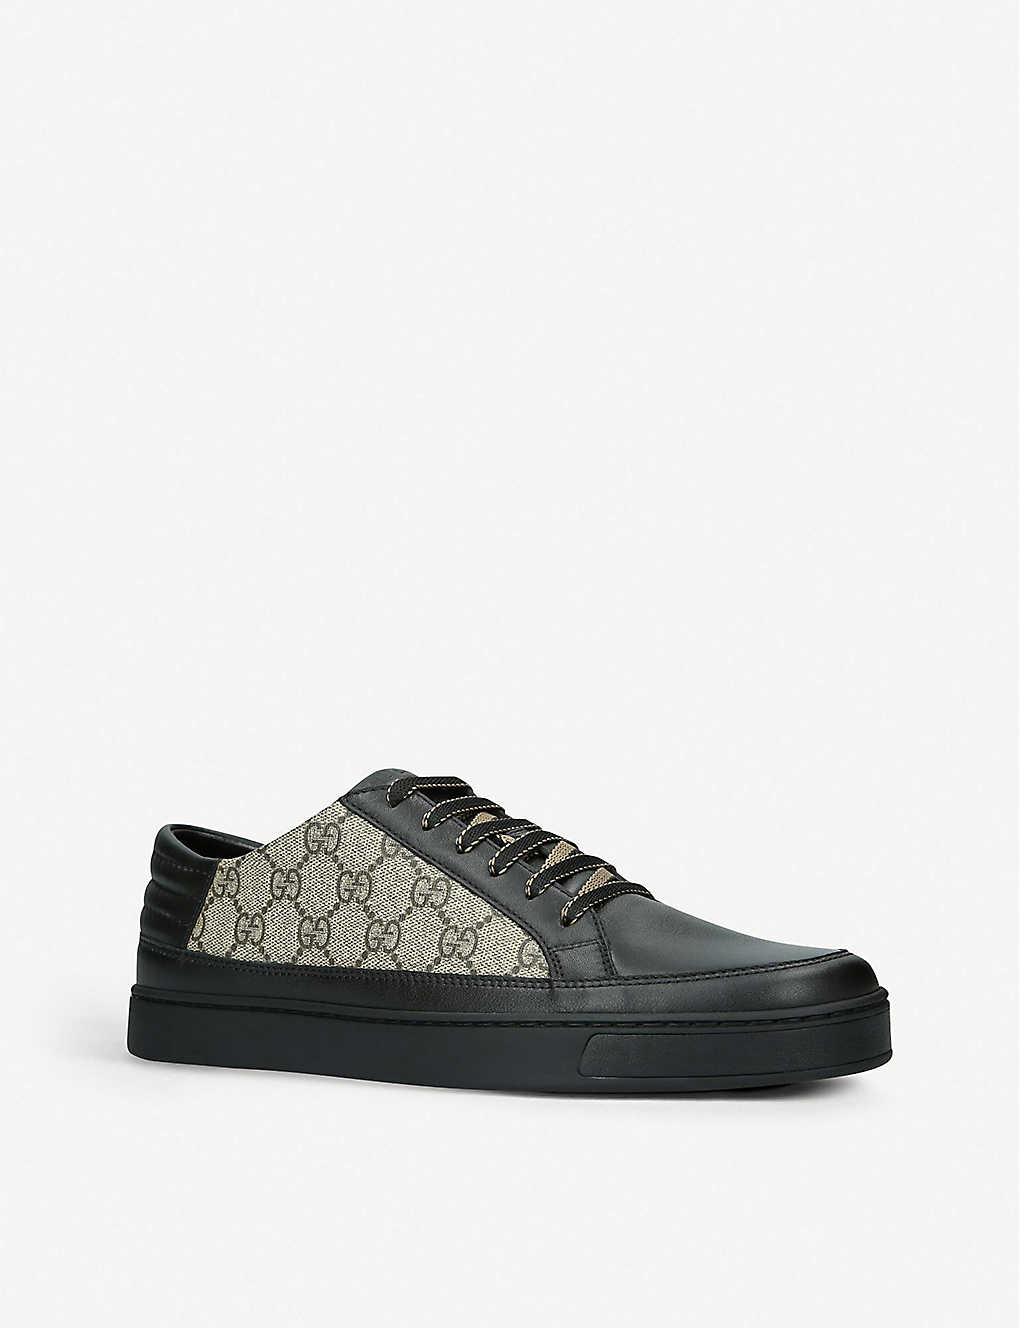 b00de5dcd9c ... Common GG Supreme leather and canvas trainers - Black ...